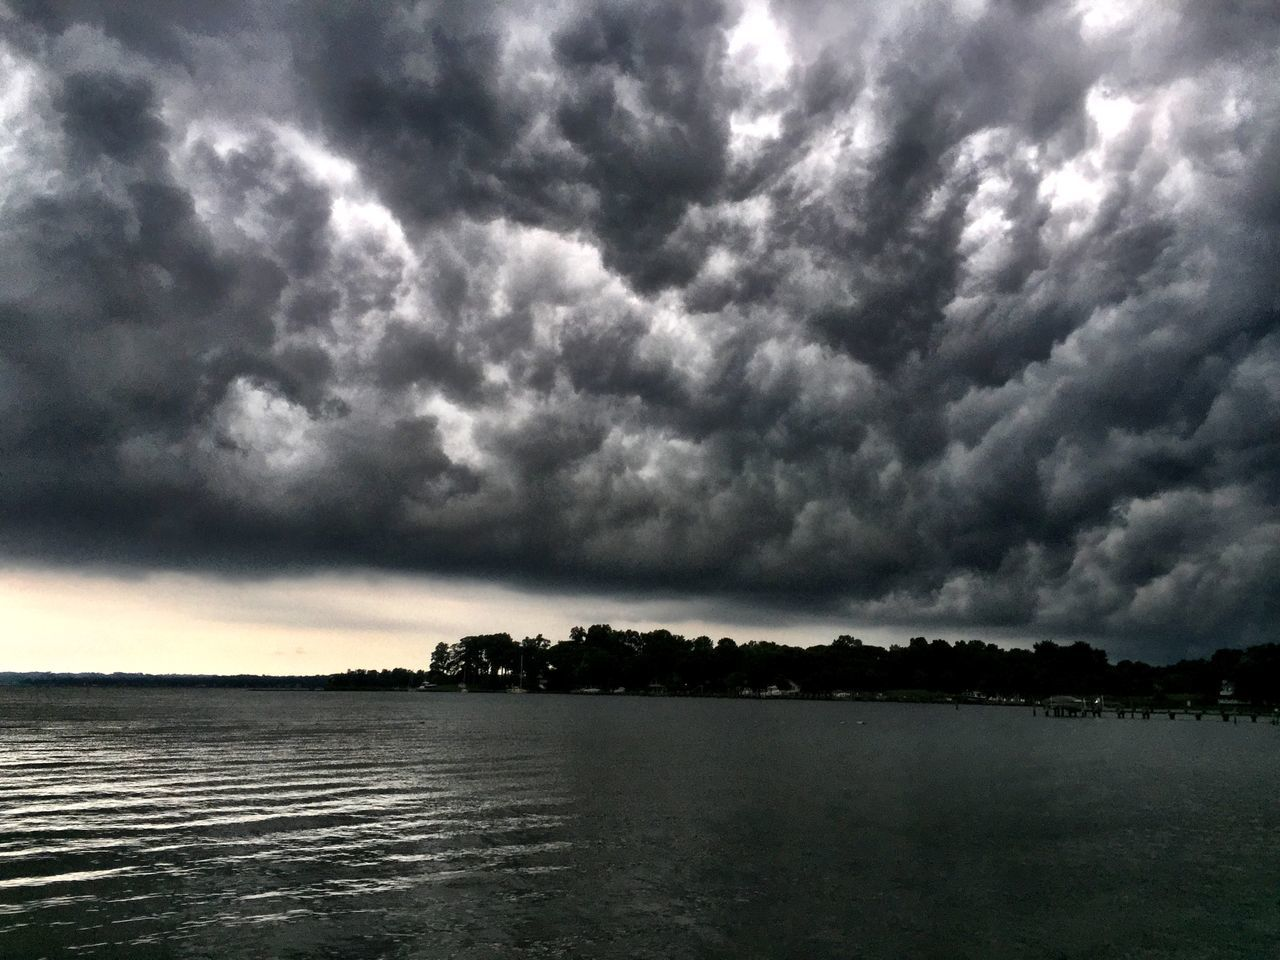 Incredible amazing school Annapolis Dramatic Sky Gibson Island Storm Storm Clouds Tranquility Water Waterfront